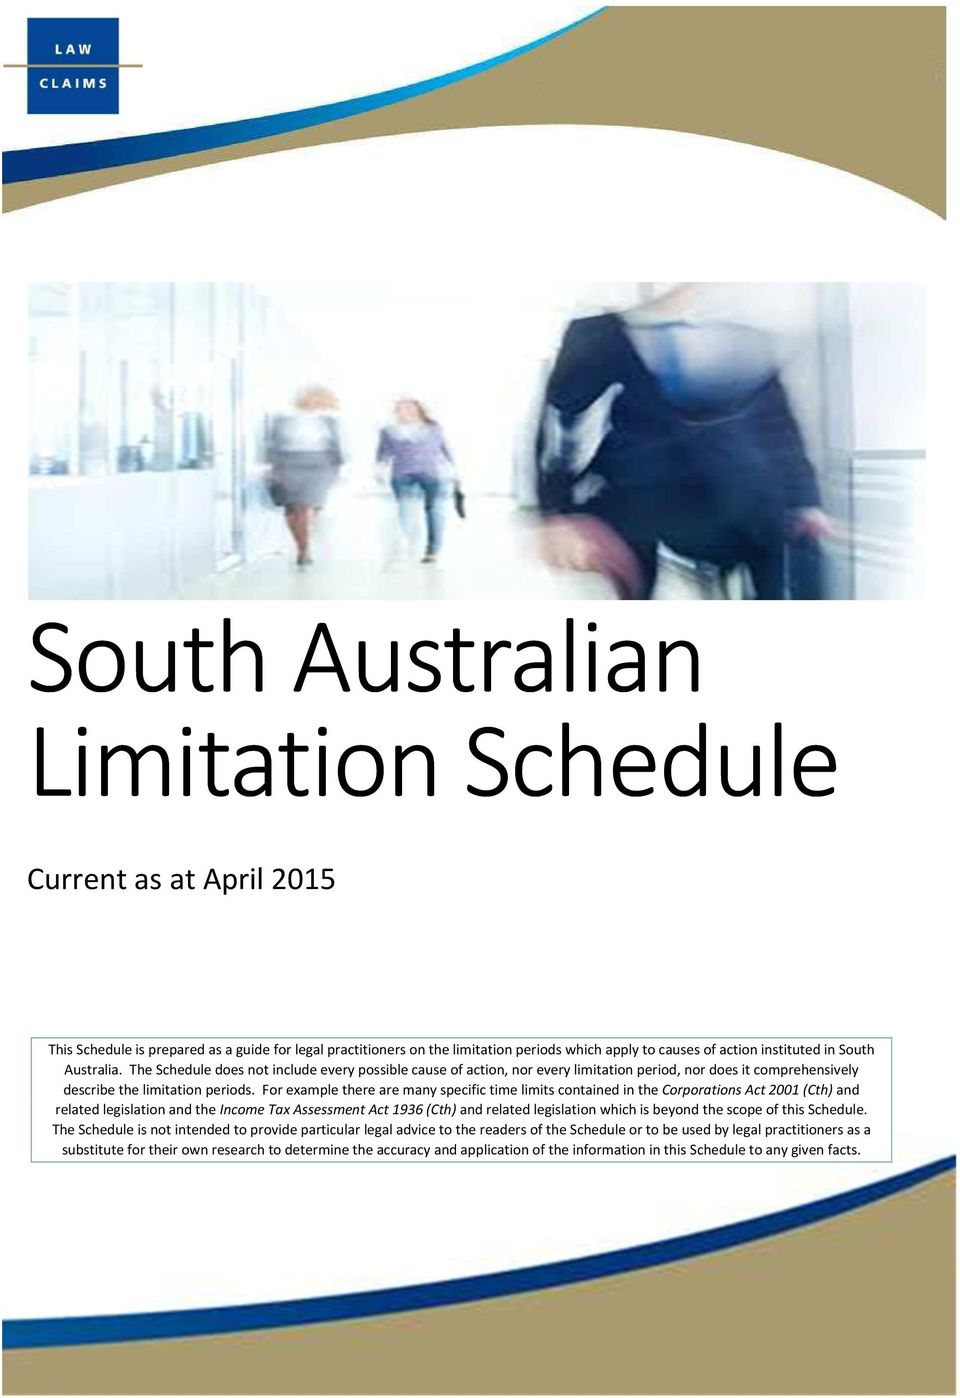 For example there are many specific time limits contained in the Corporations Act 2001 (Cth) and related legislation and the Income Tax Assessment Act 1936 (Cth) and related legislation which is